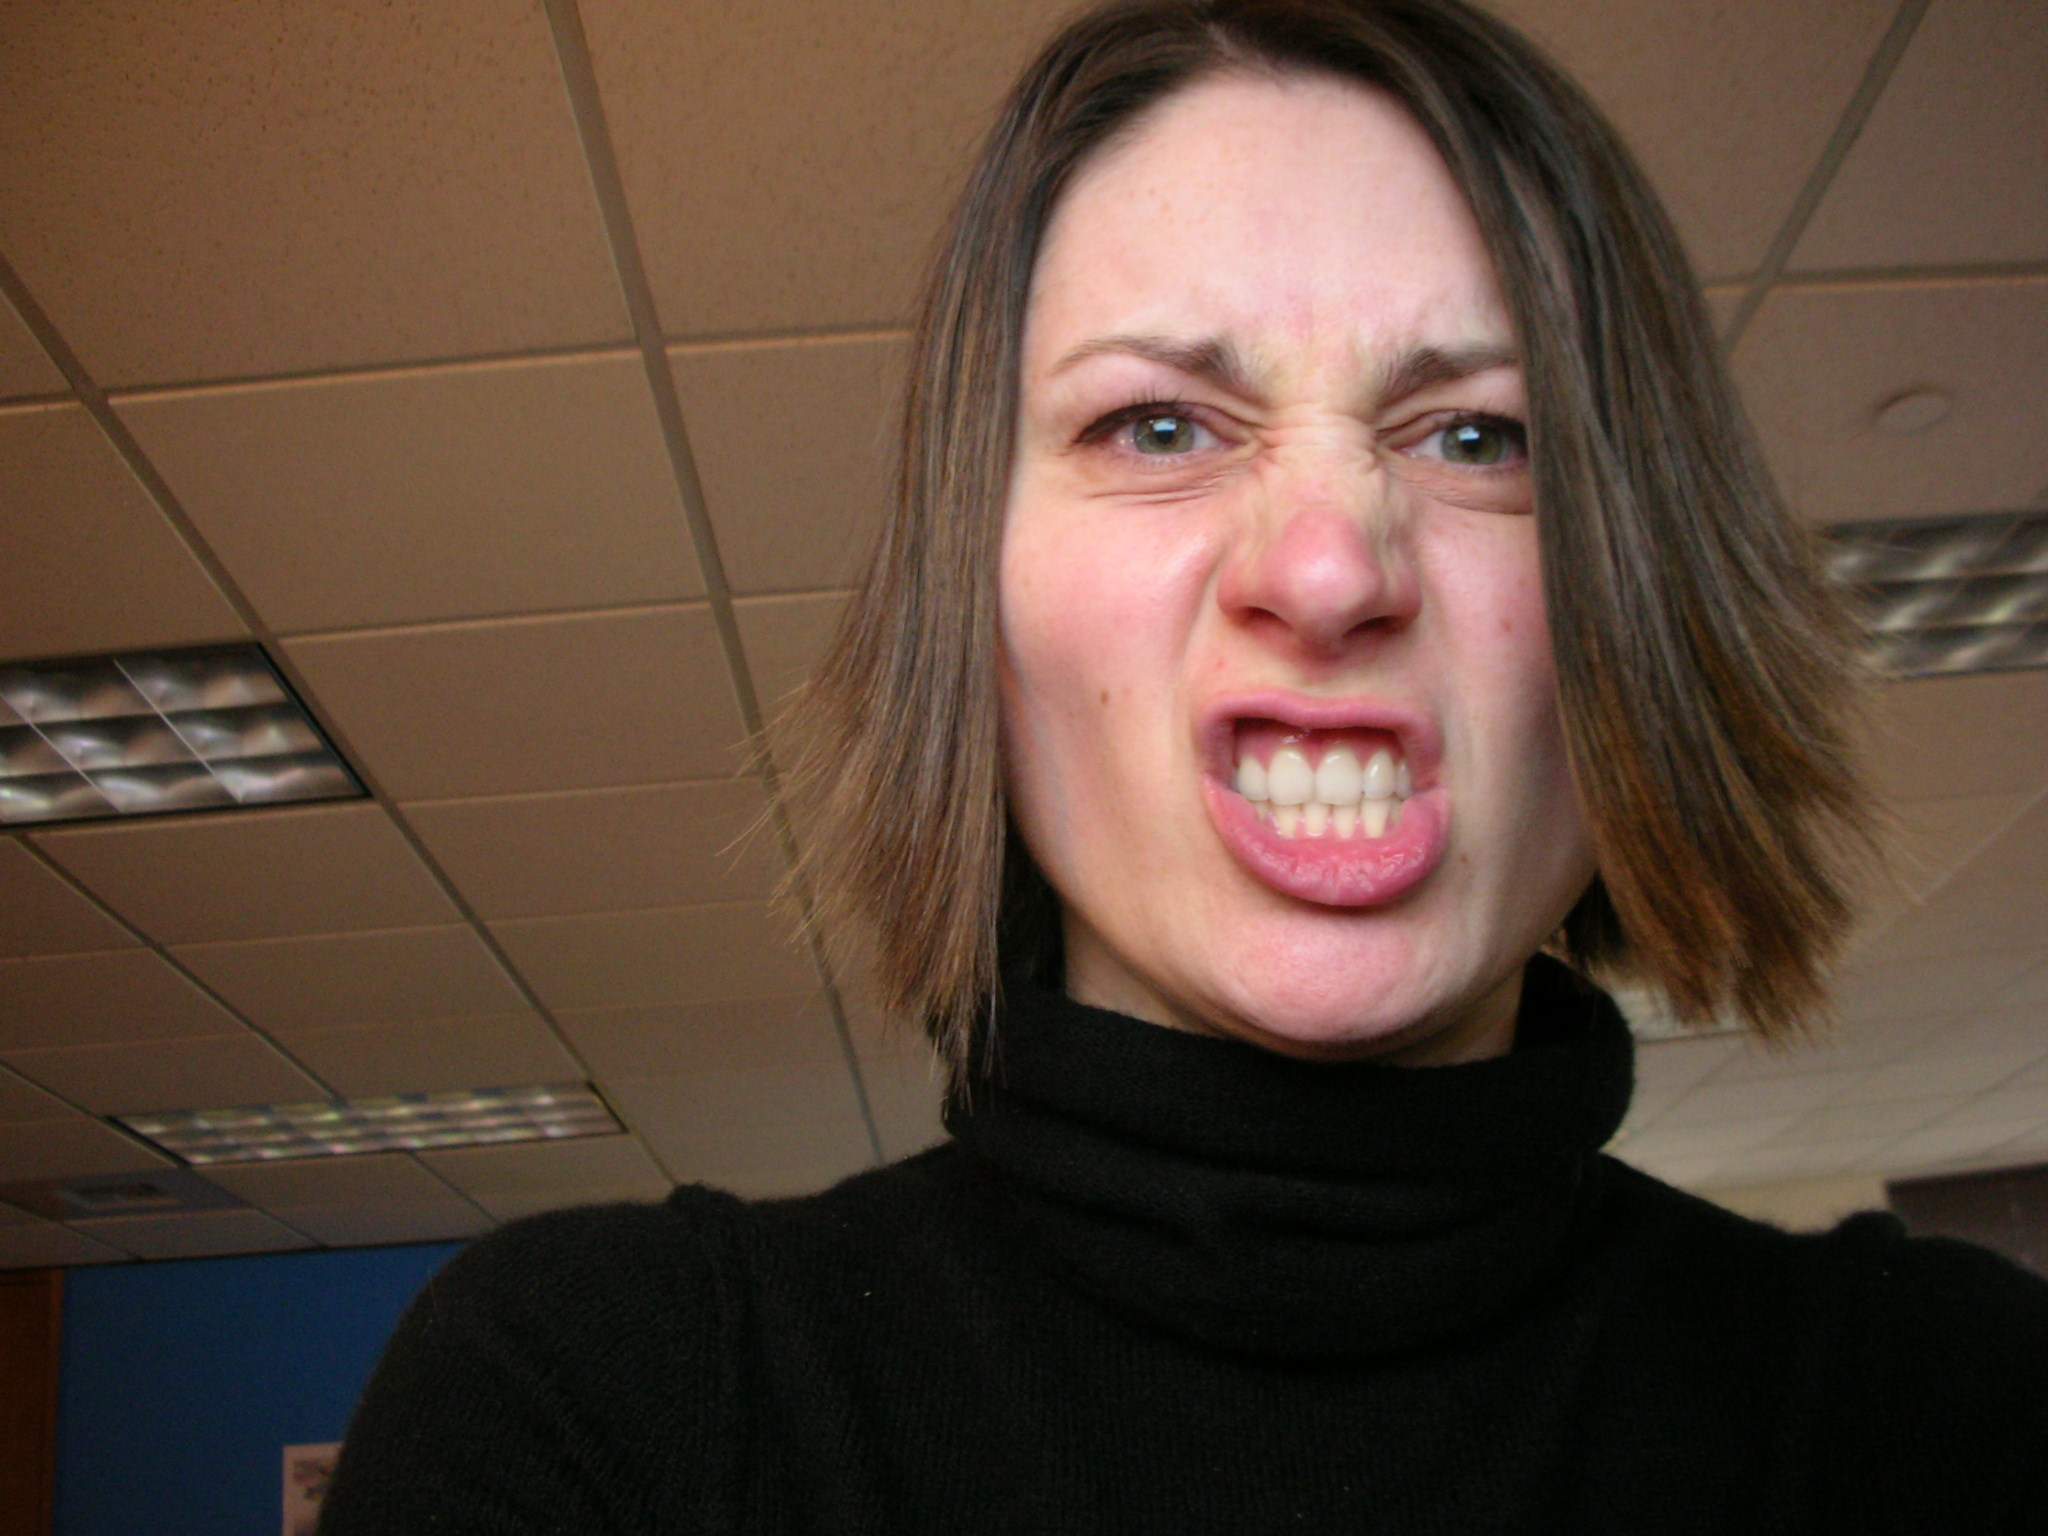 File:Angry woman.jpg - Wikimedia Commons